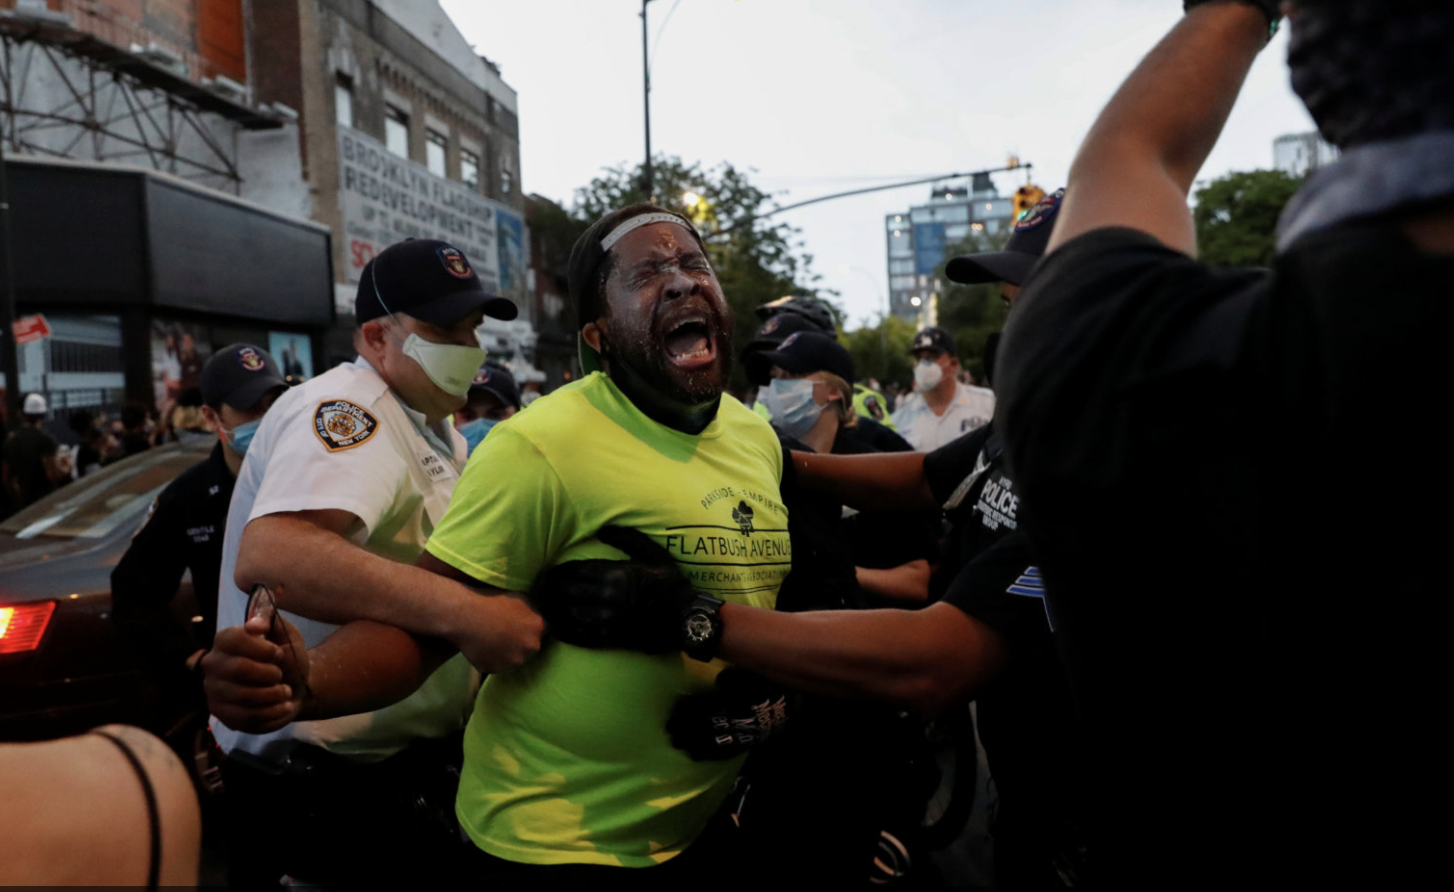 More than 500 complaints filed regarding police misconduct at George Floyd protests